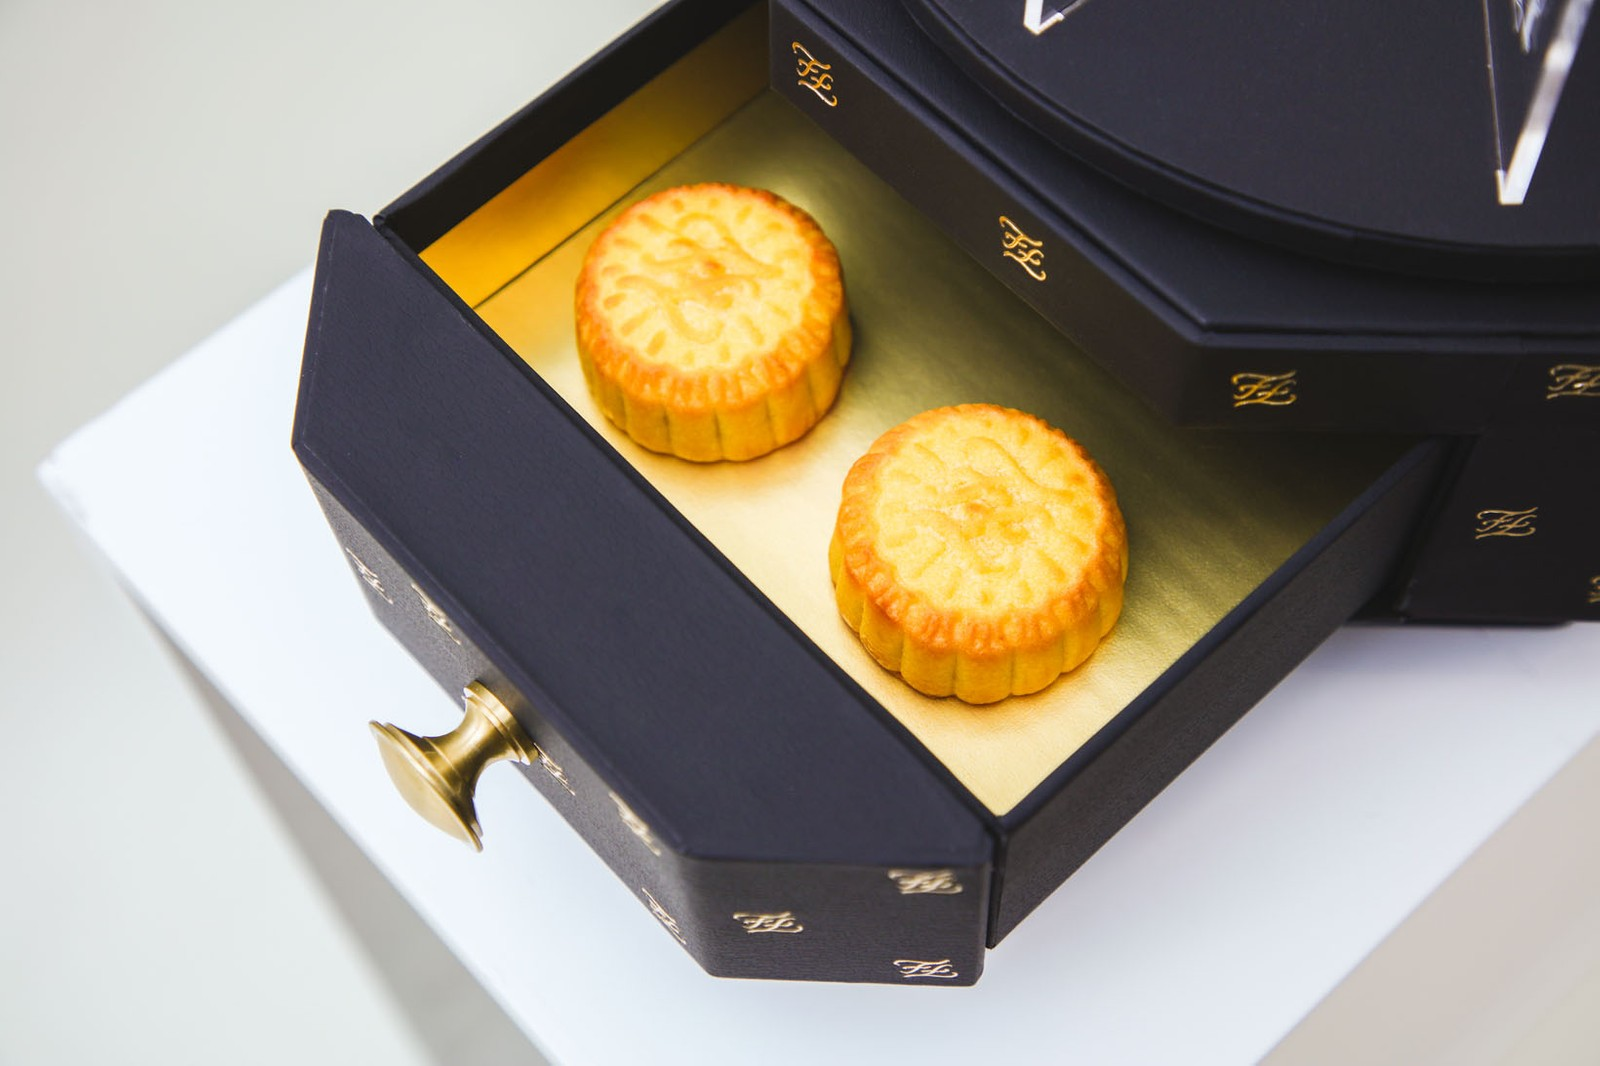 best mooncakes mid-autumn festival luxurious holiday louis vuitton gucci fendi maison margiela burberry loewe celine saint laurent hermes